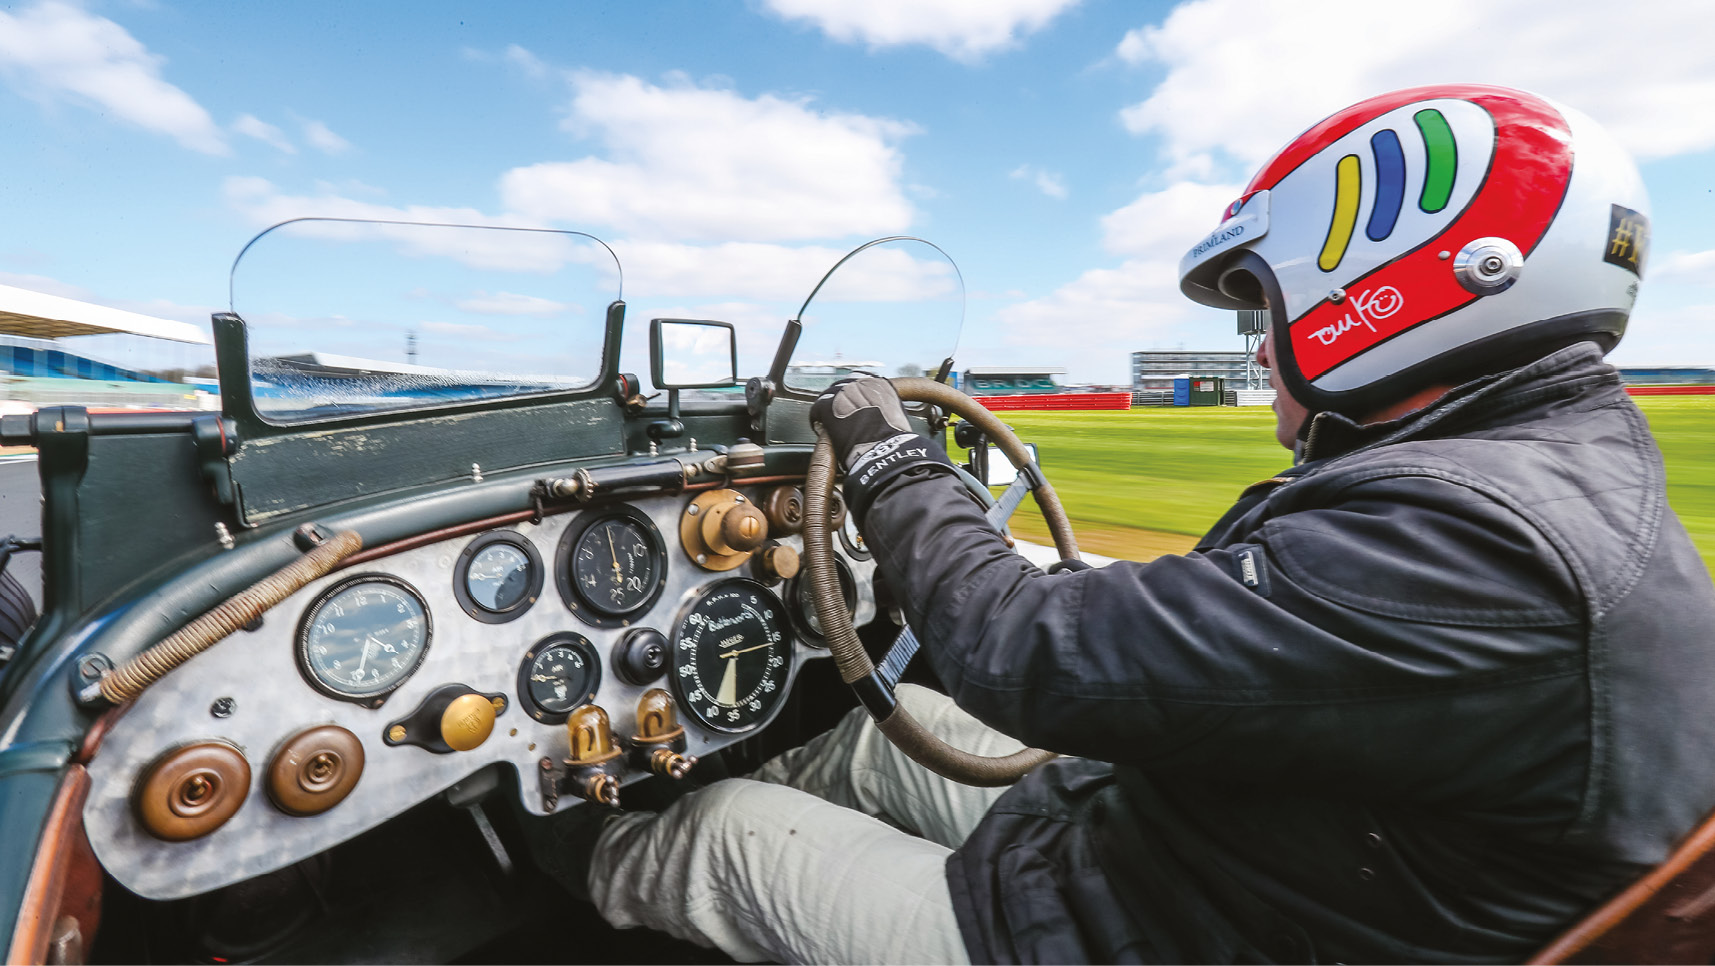 Kristensen had to adapt to the old-school technology of the vintage 1930 Bentley